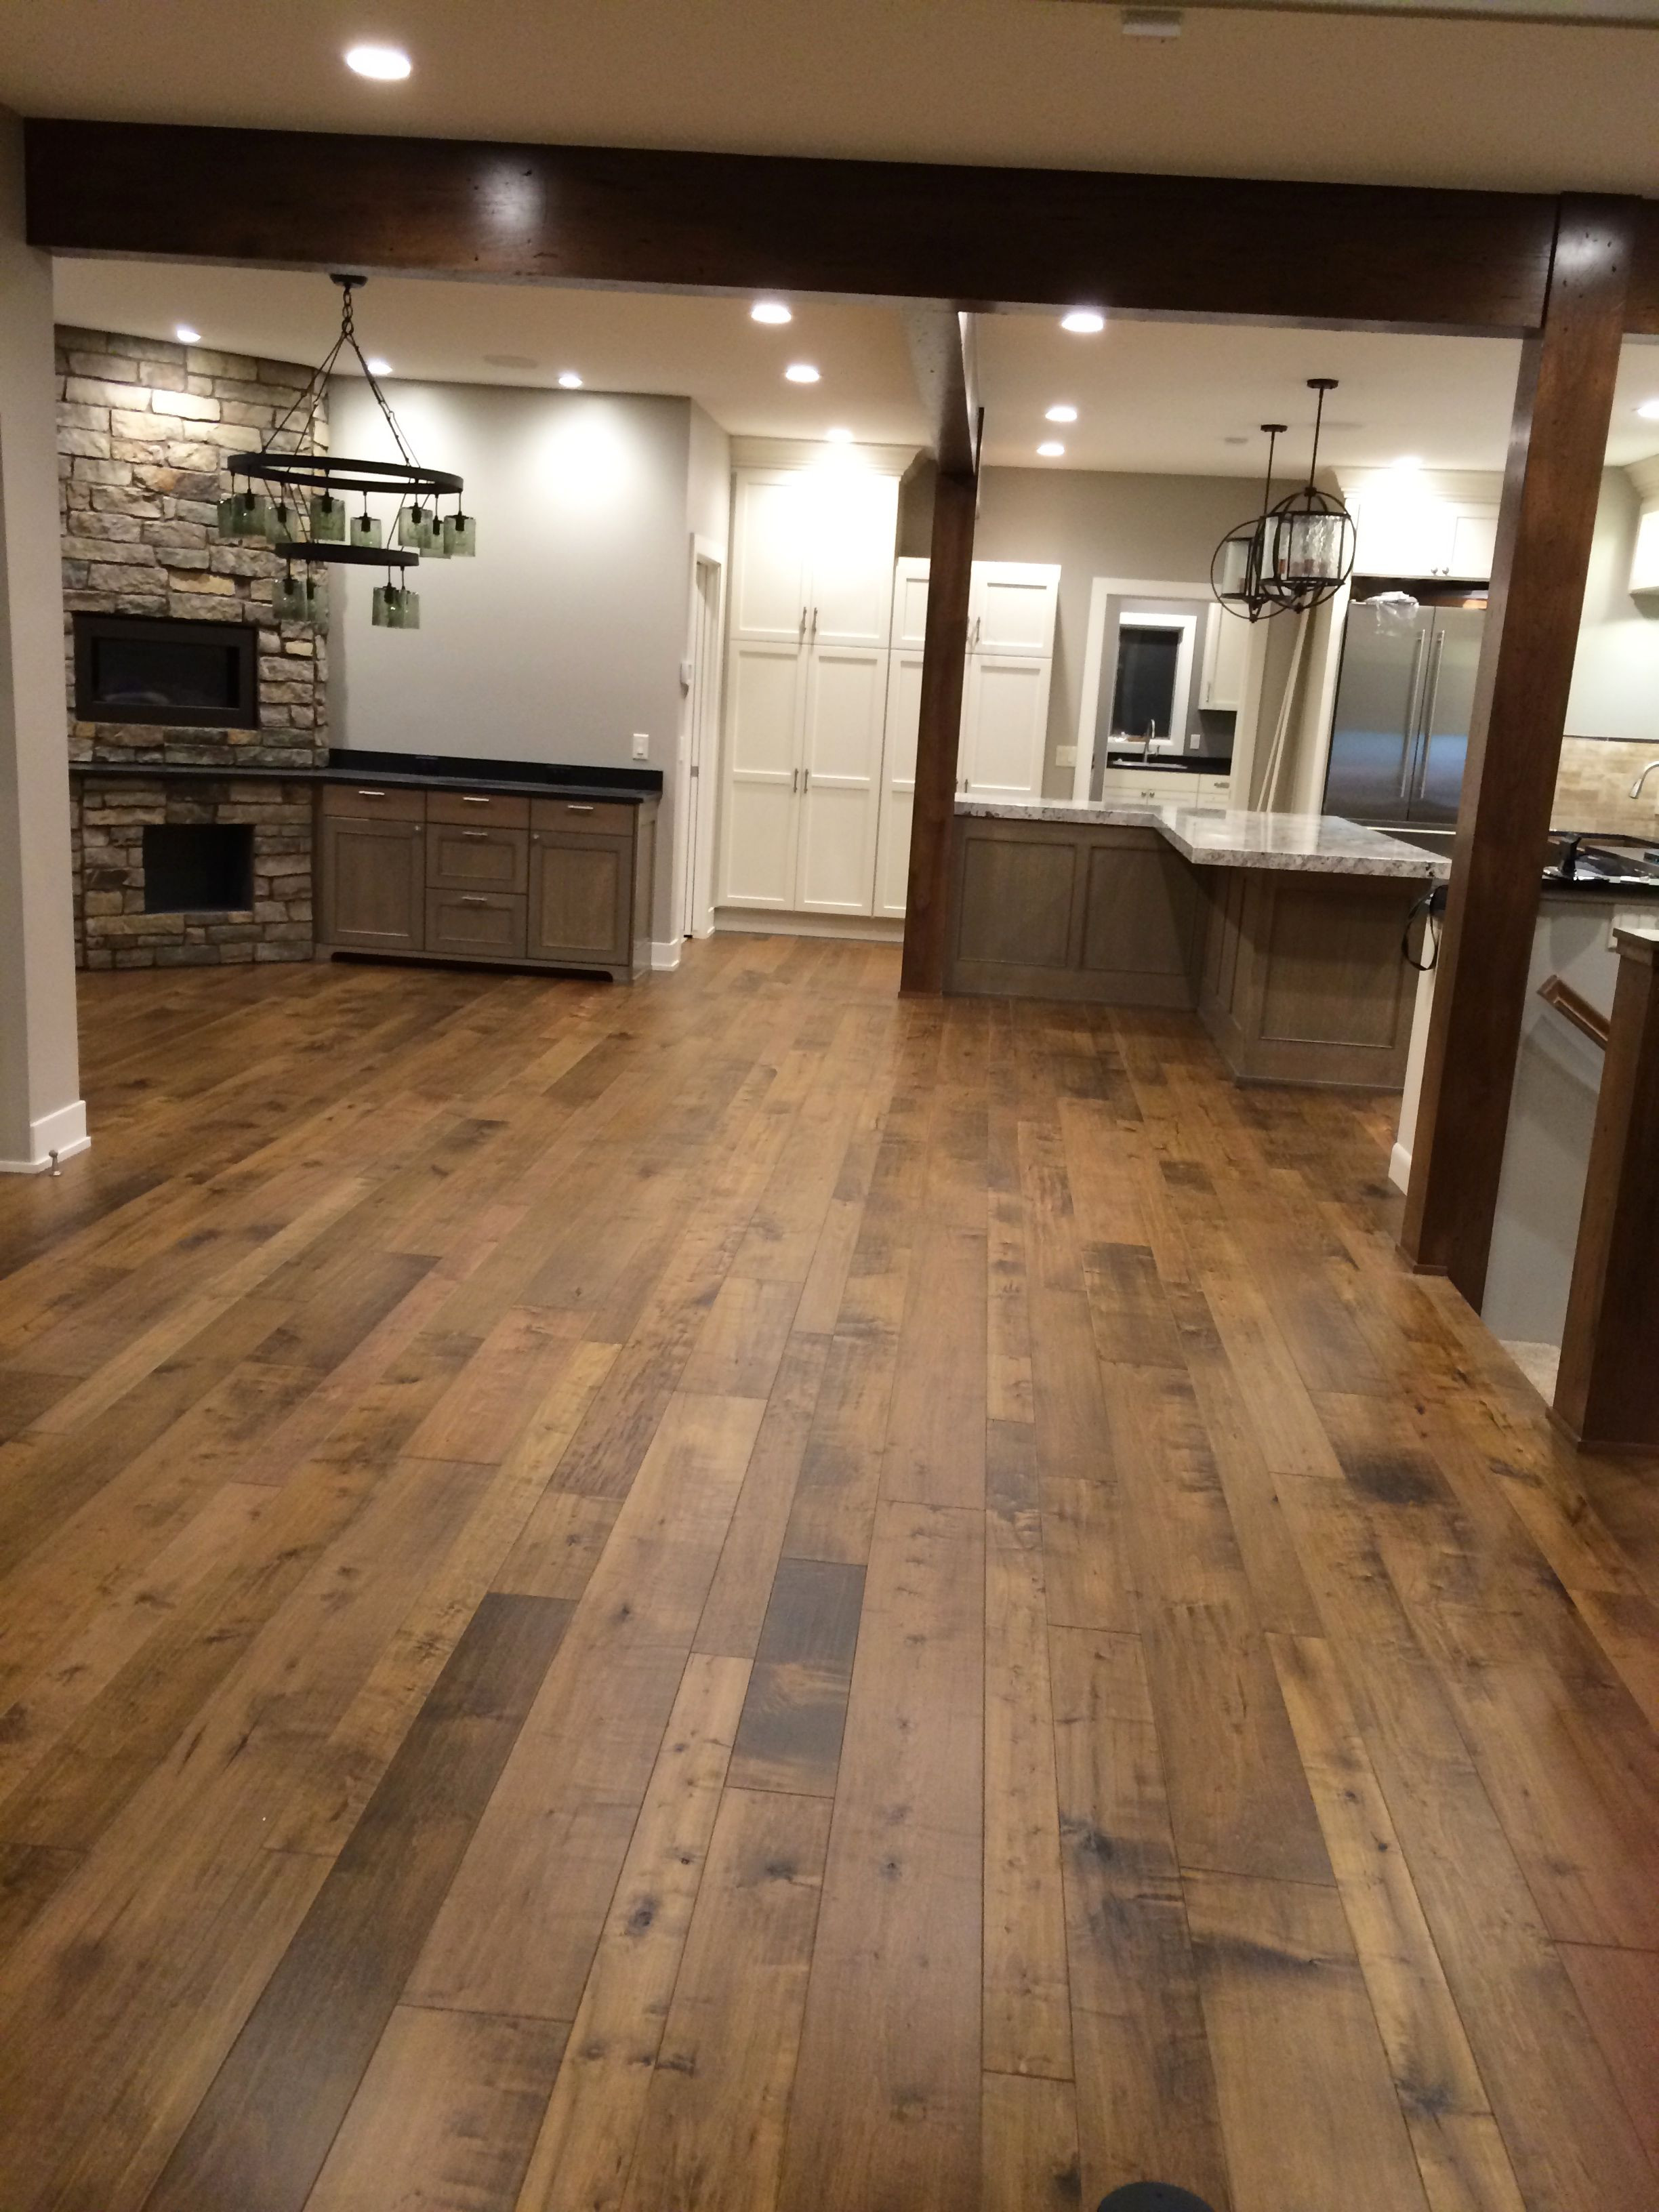 unfinished hardwood flooring ottawa of andy acker andyacker13 on pinterest intended for 6985ef3ccc80e0a544d67248a628d5fb